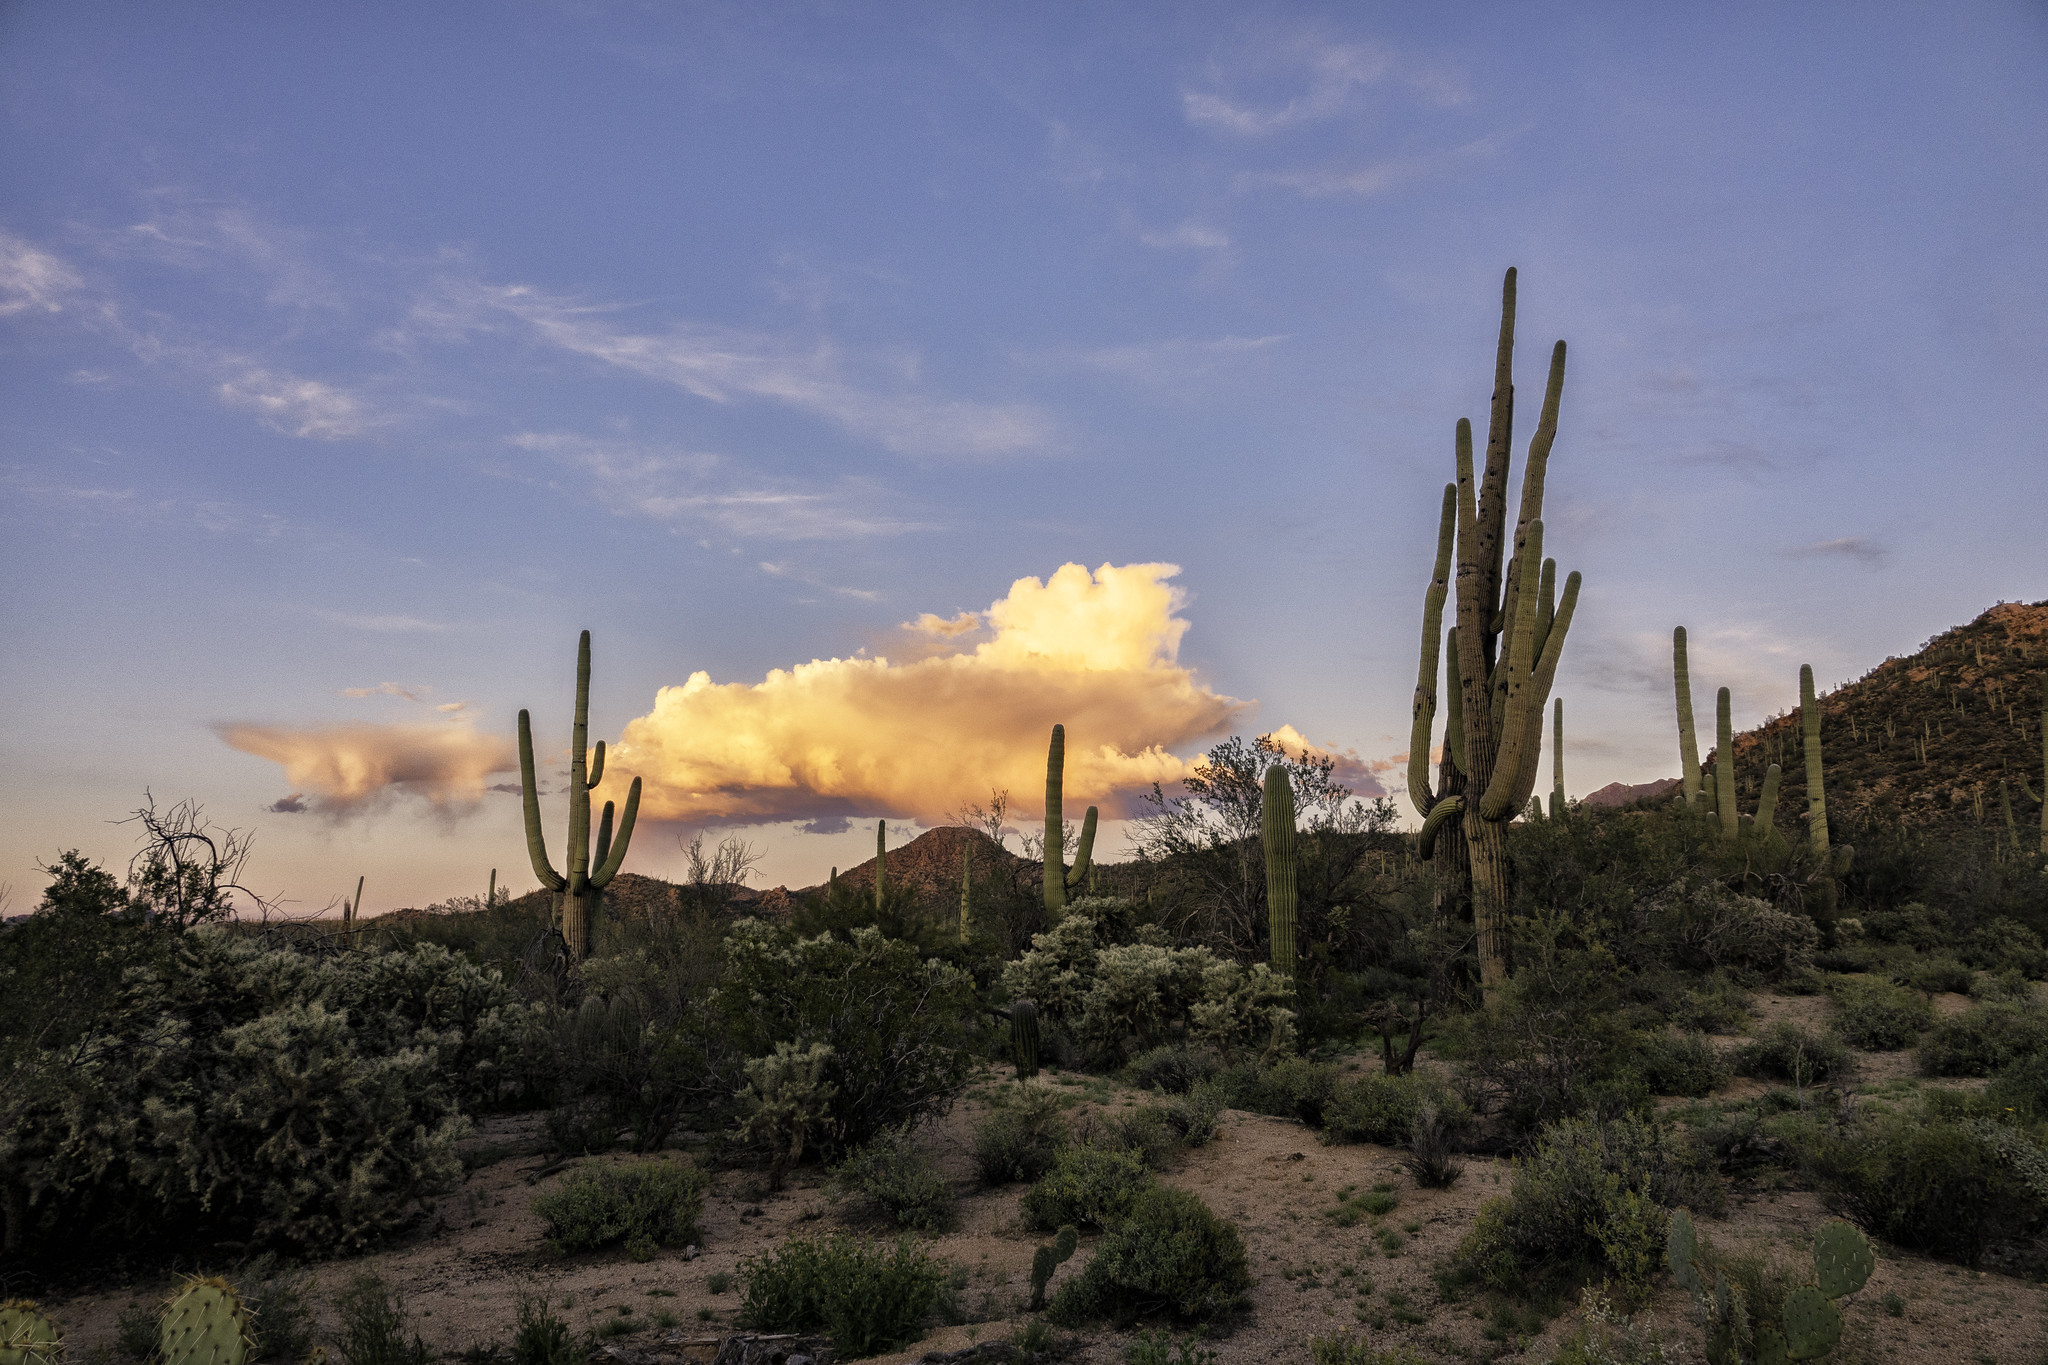 Saguaro National Park is one of the national parks in Arizona still open during the coronavirus.